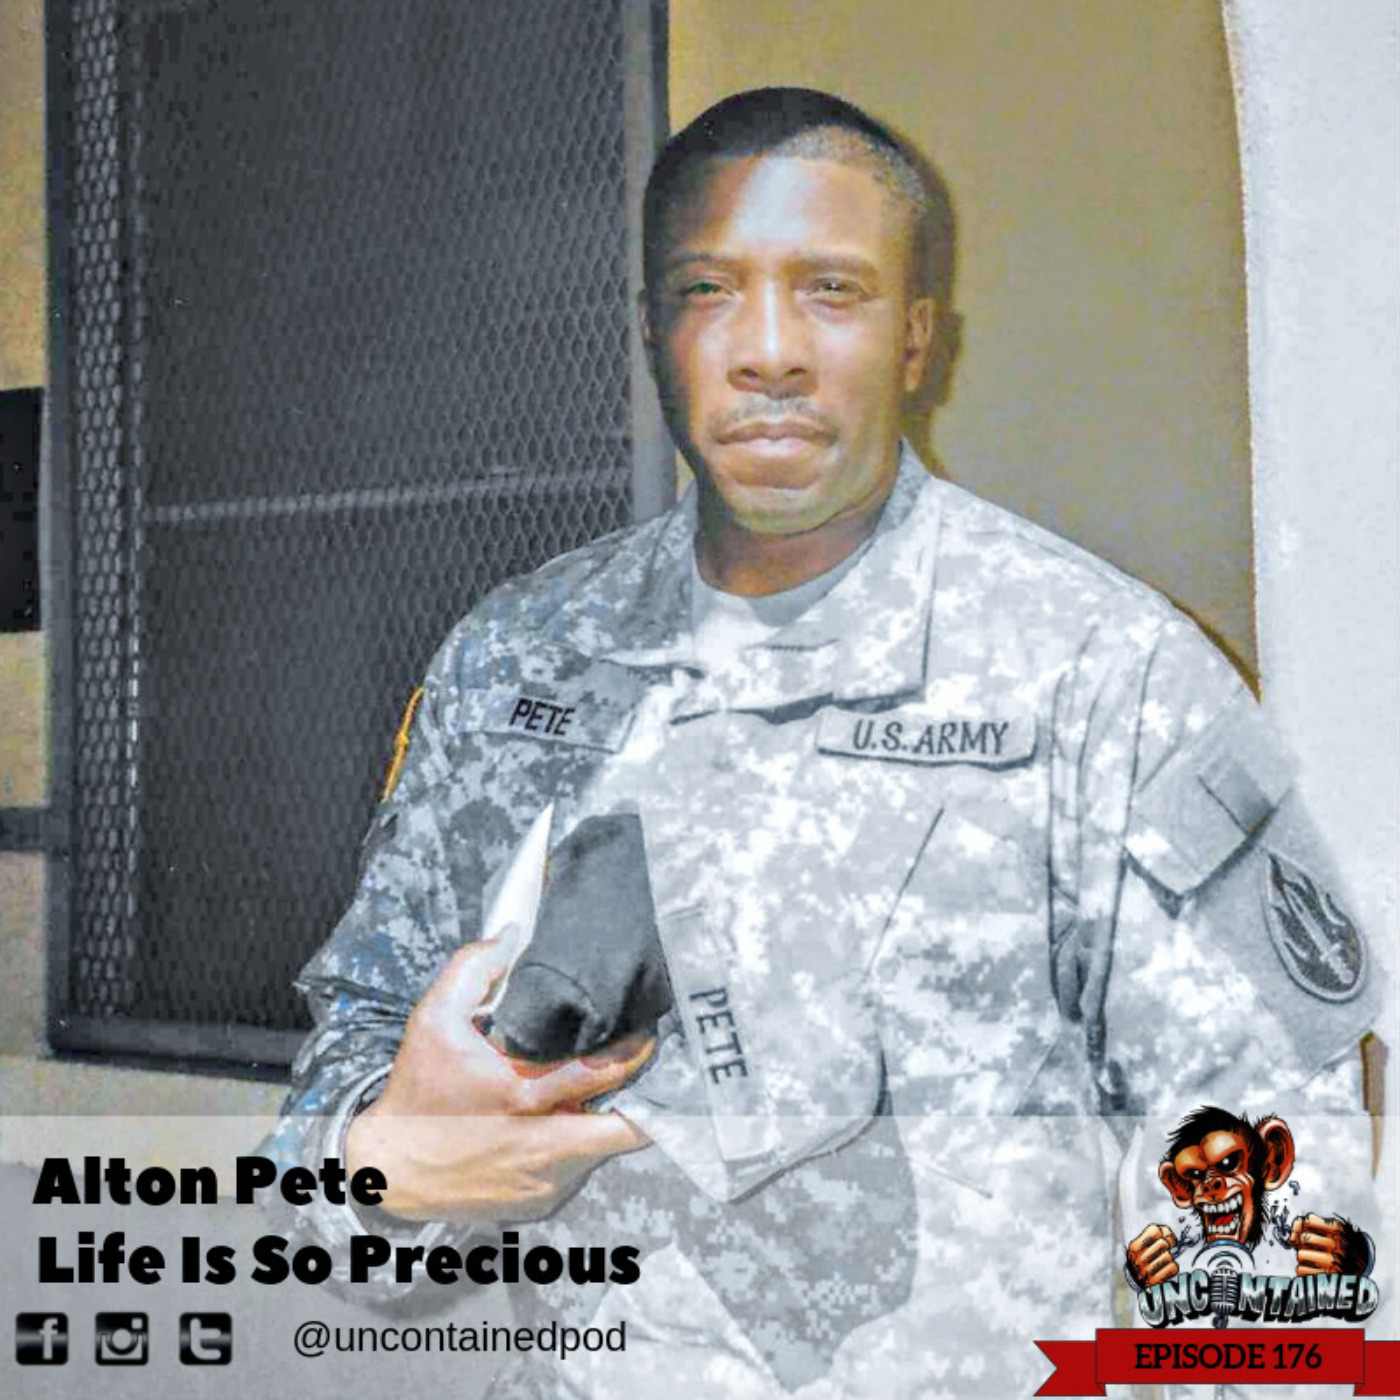 Episode 176: Alton Pete - Life Is So Precious